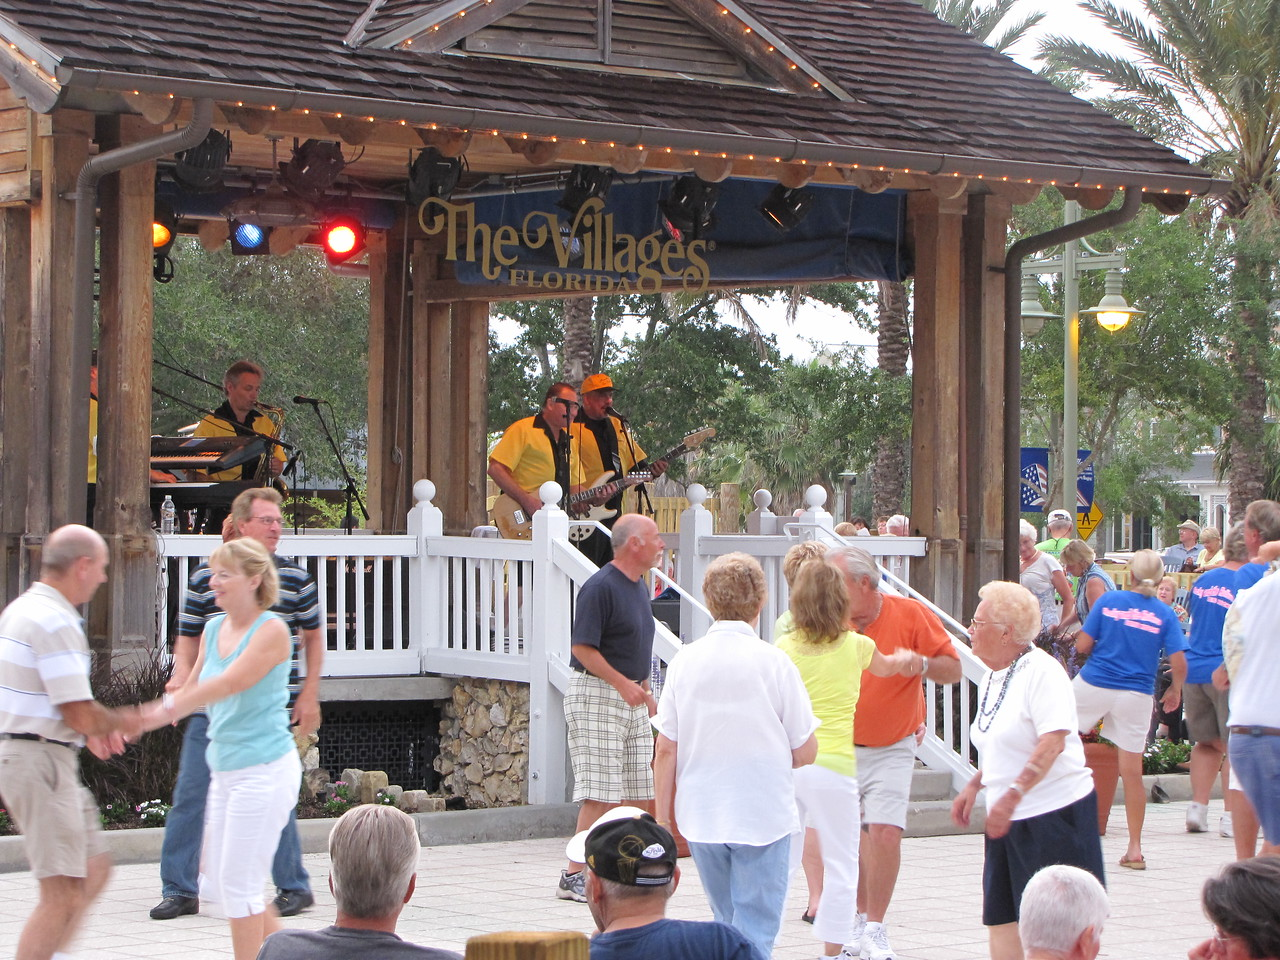 Rocky & The Rollers a popular 50's & 60's band performs at Sumter Landing in The Villages.